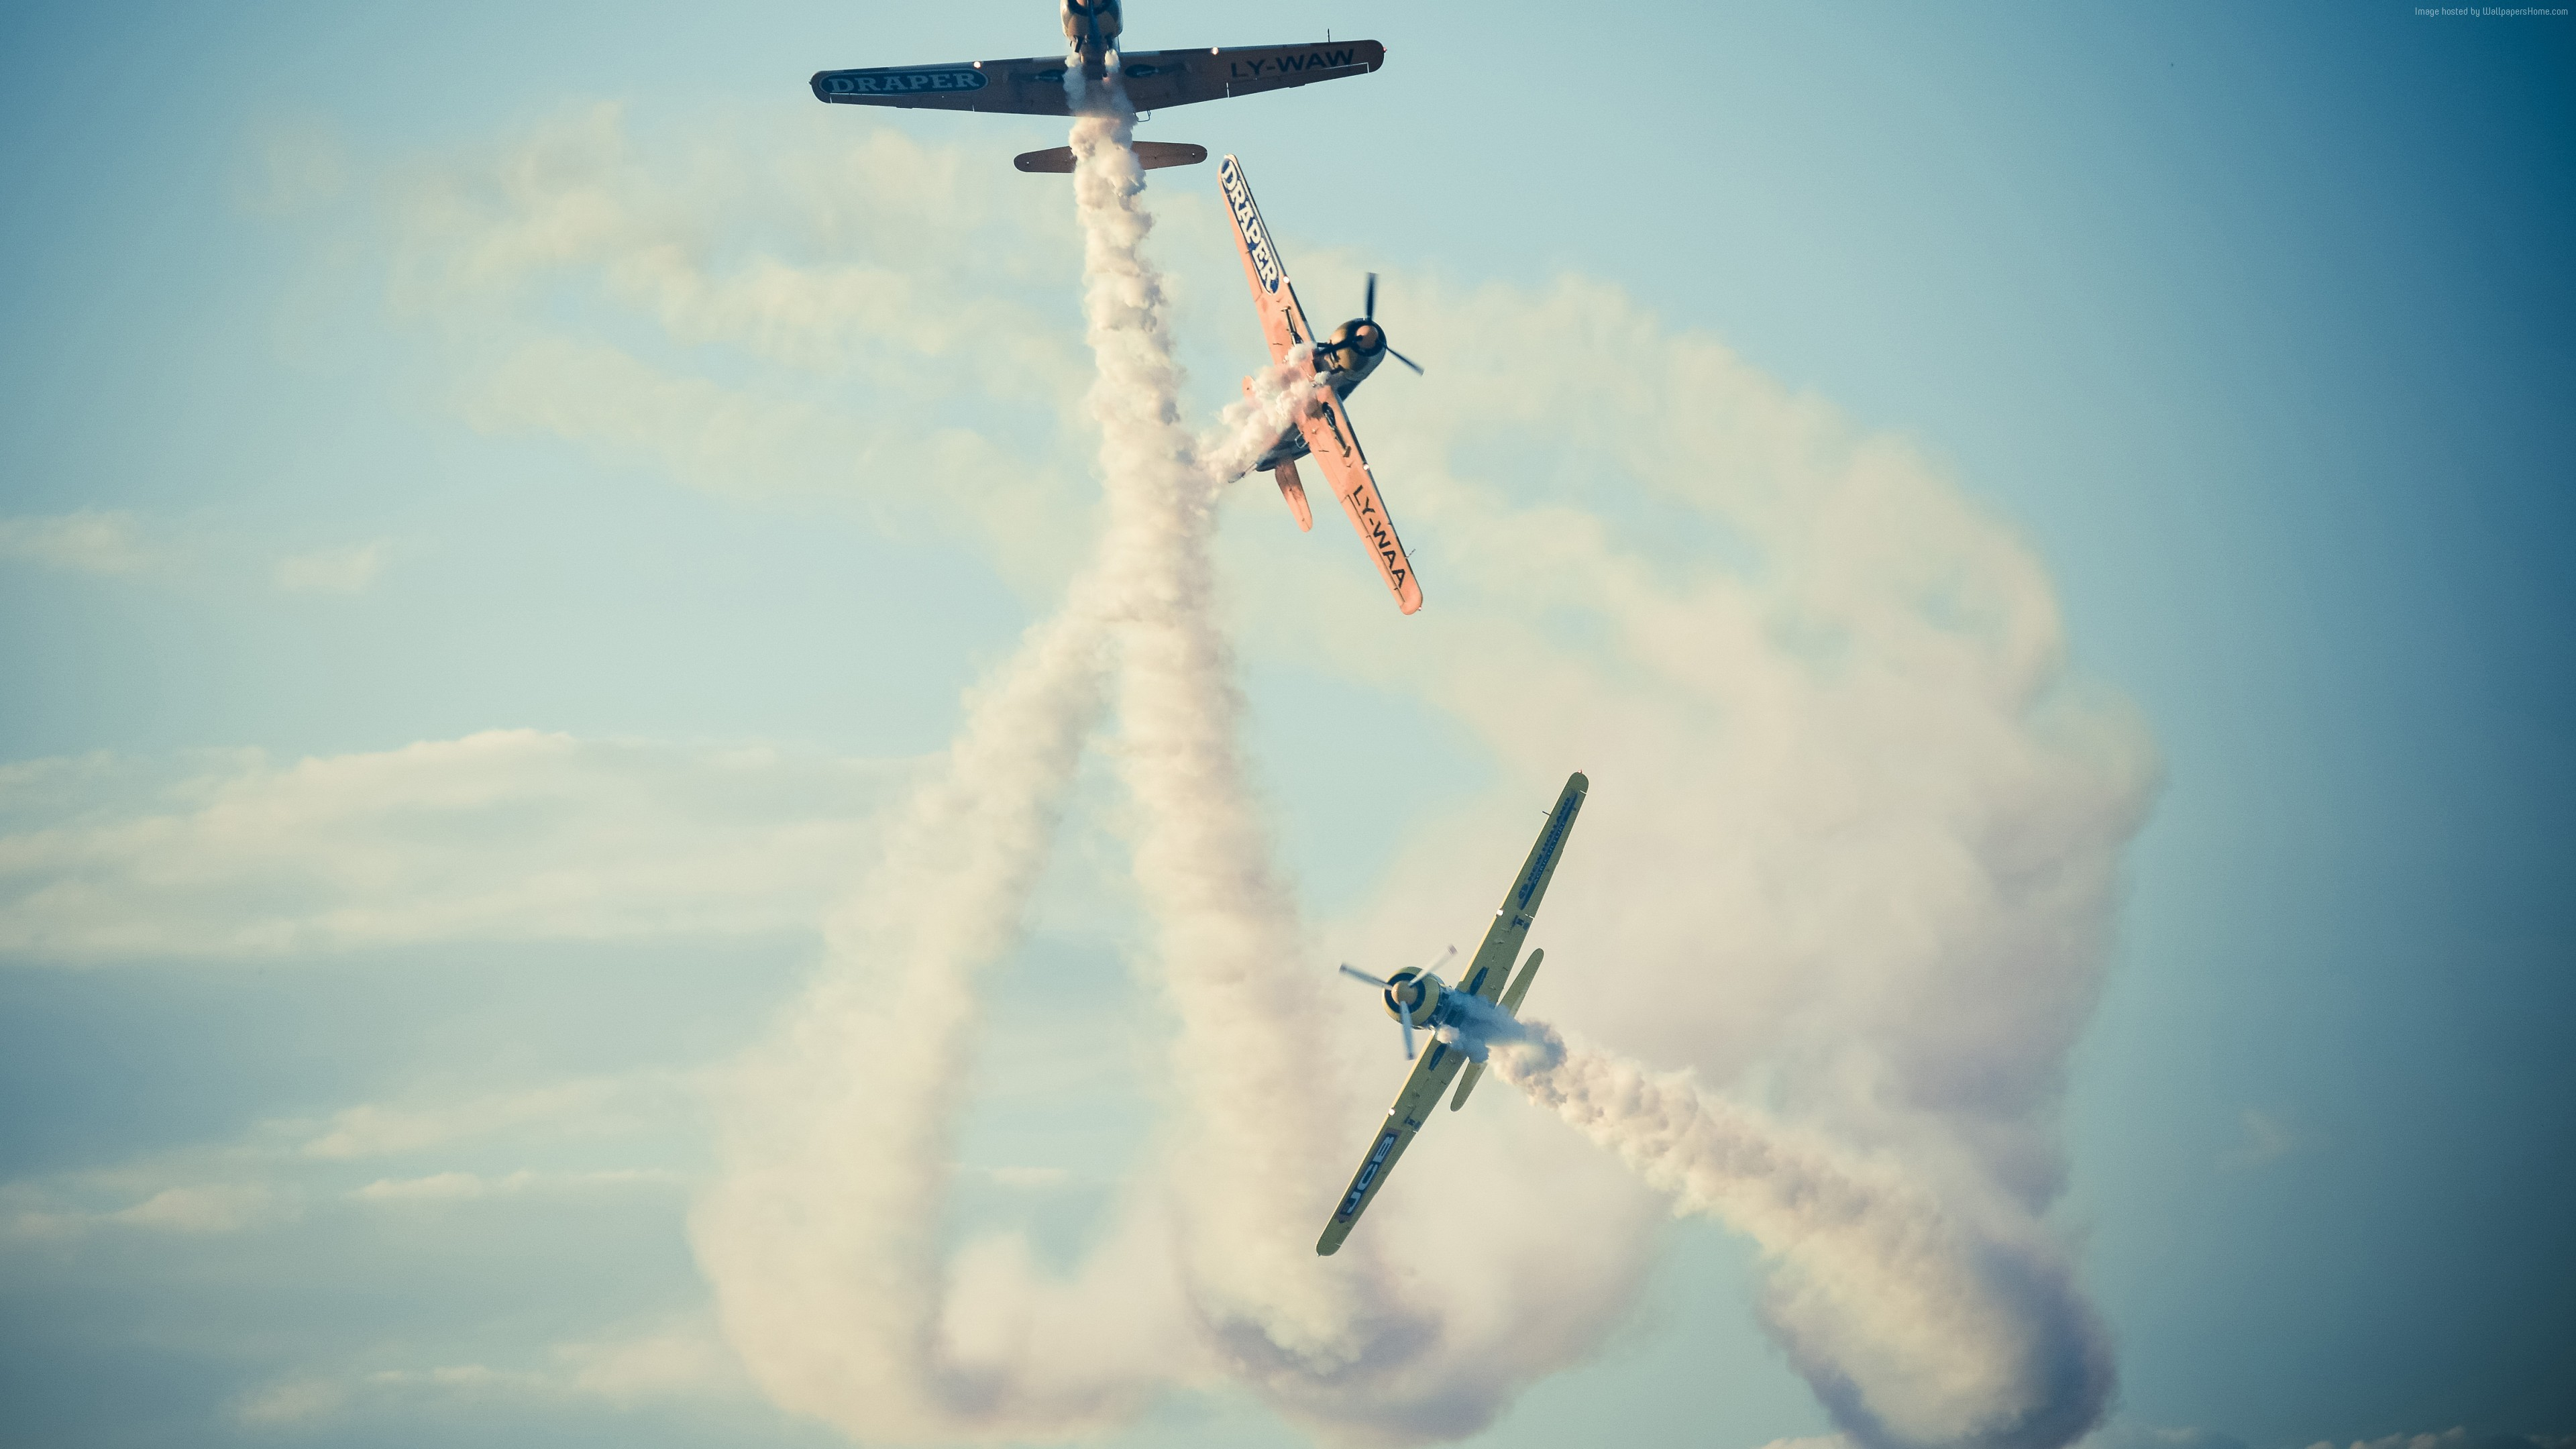 Wallpaper Bucharest airshow, 4k, 5k wallpaper, 2015 Sony World Photography Awards, sky, clouds, planes, Military